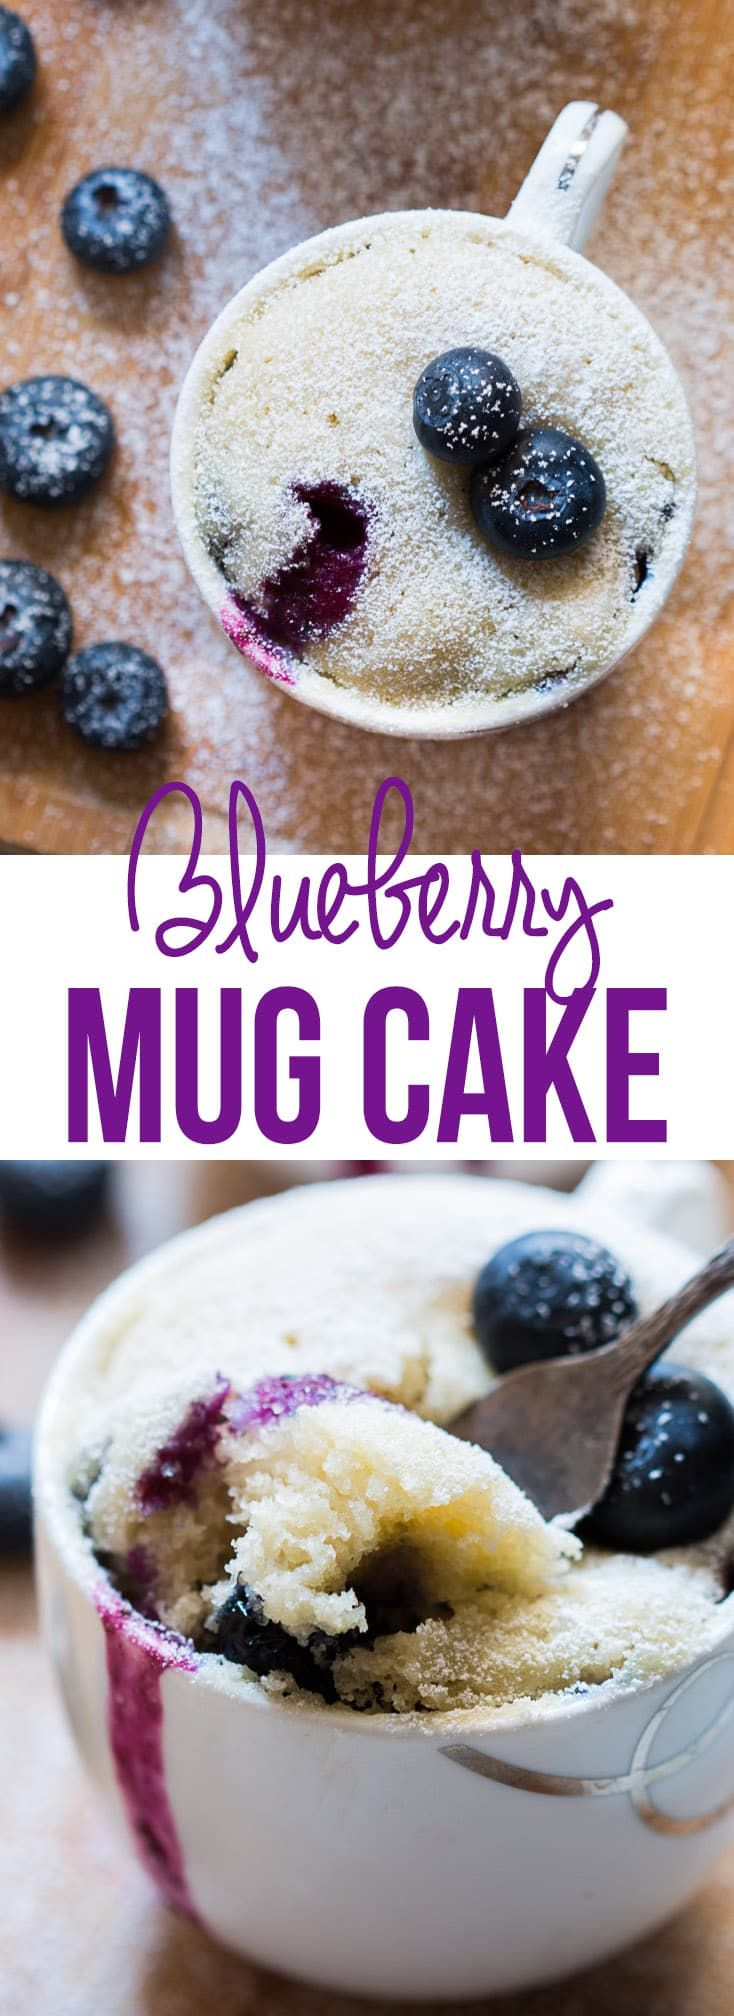 Recipe for quick eggless blueberry mug cake ready in under two minutes in a microwave. No eggs, no oven required. Only 270 calories per serving.